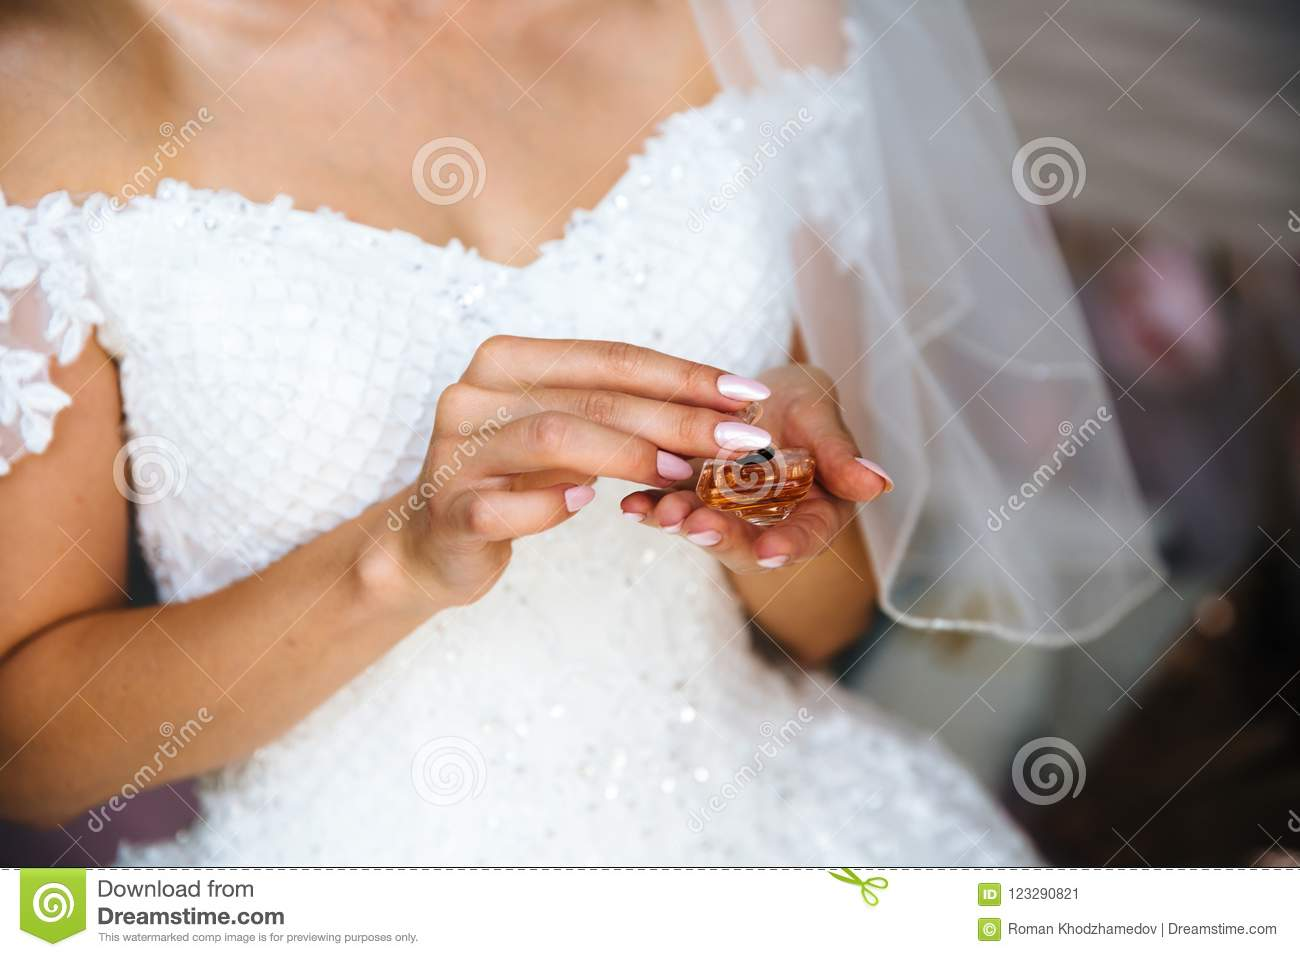 A Close Up Of A Cropped Bride In A Wedding Dress Is Holding A Small